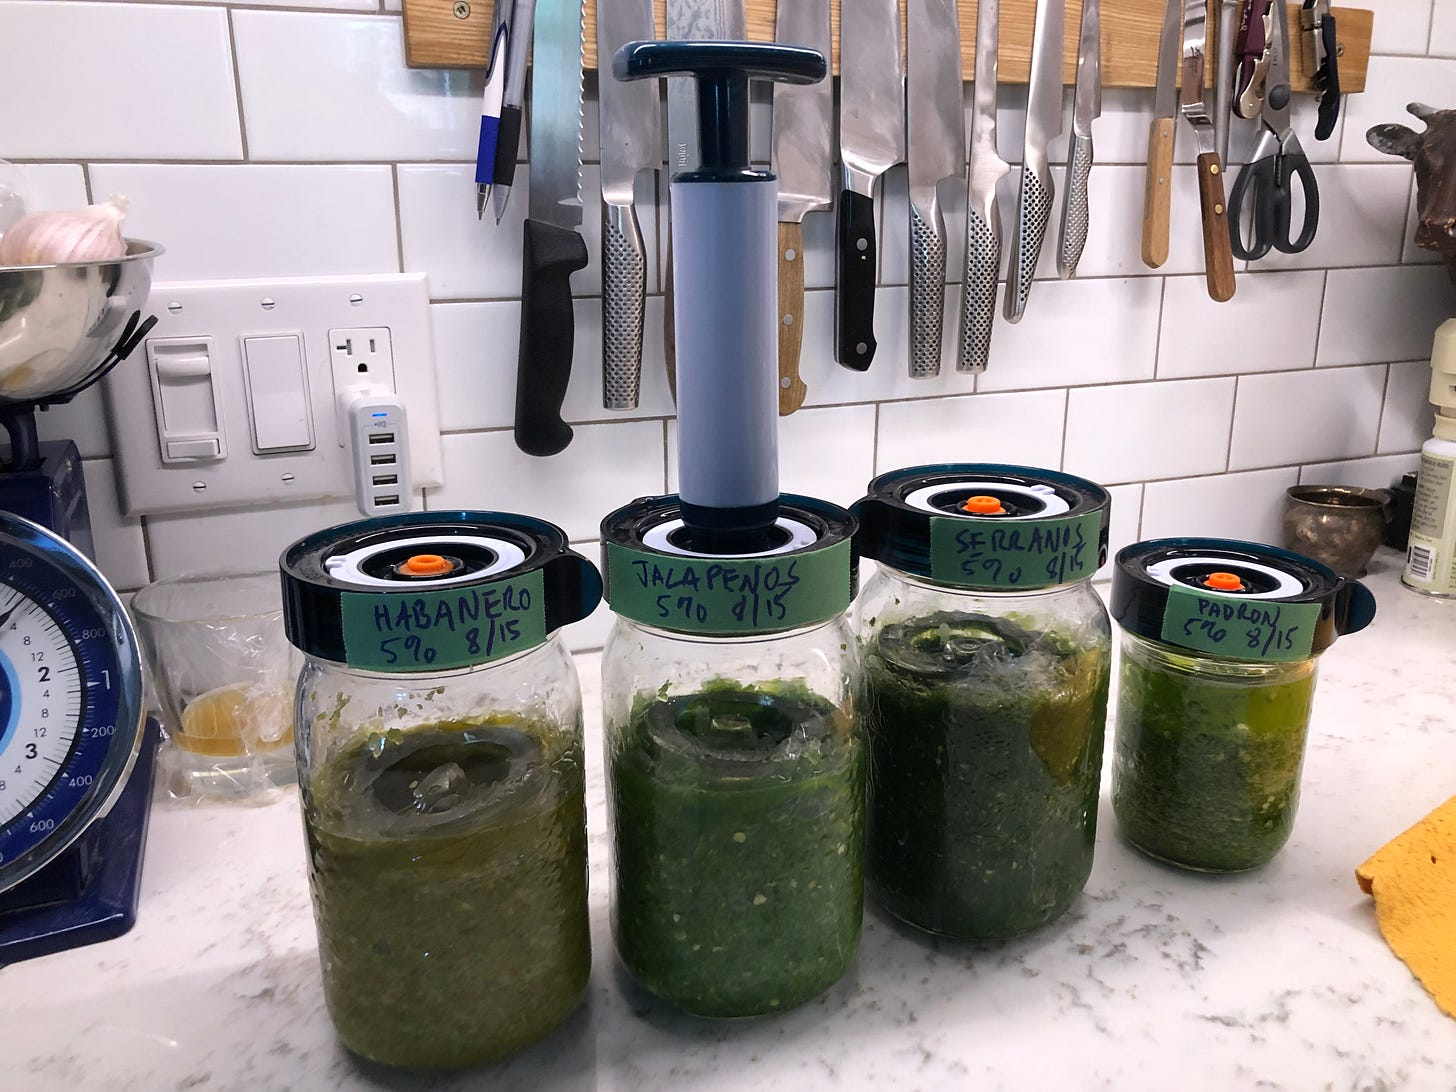 A row of jars holding various chile mashes. They are labelled Habanero, Jalapeño, Serrano, and Padron. All are dated August 15th. There is a hand pump attached to the lid of the Jalapeño jar.